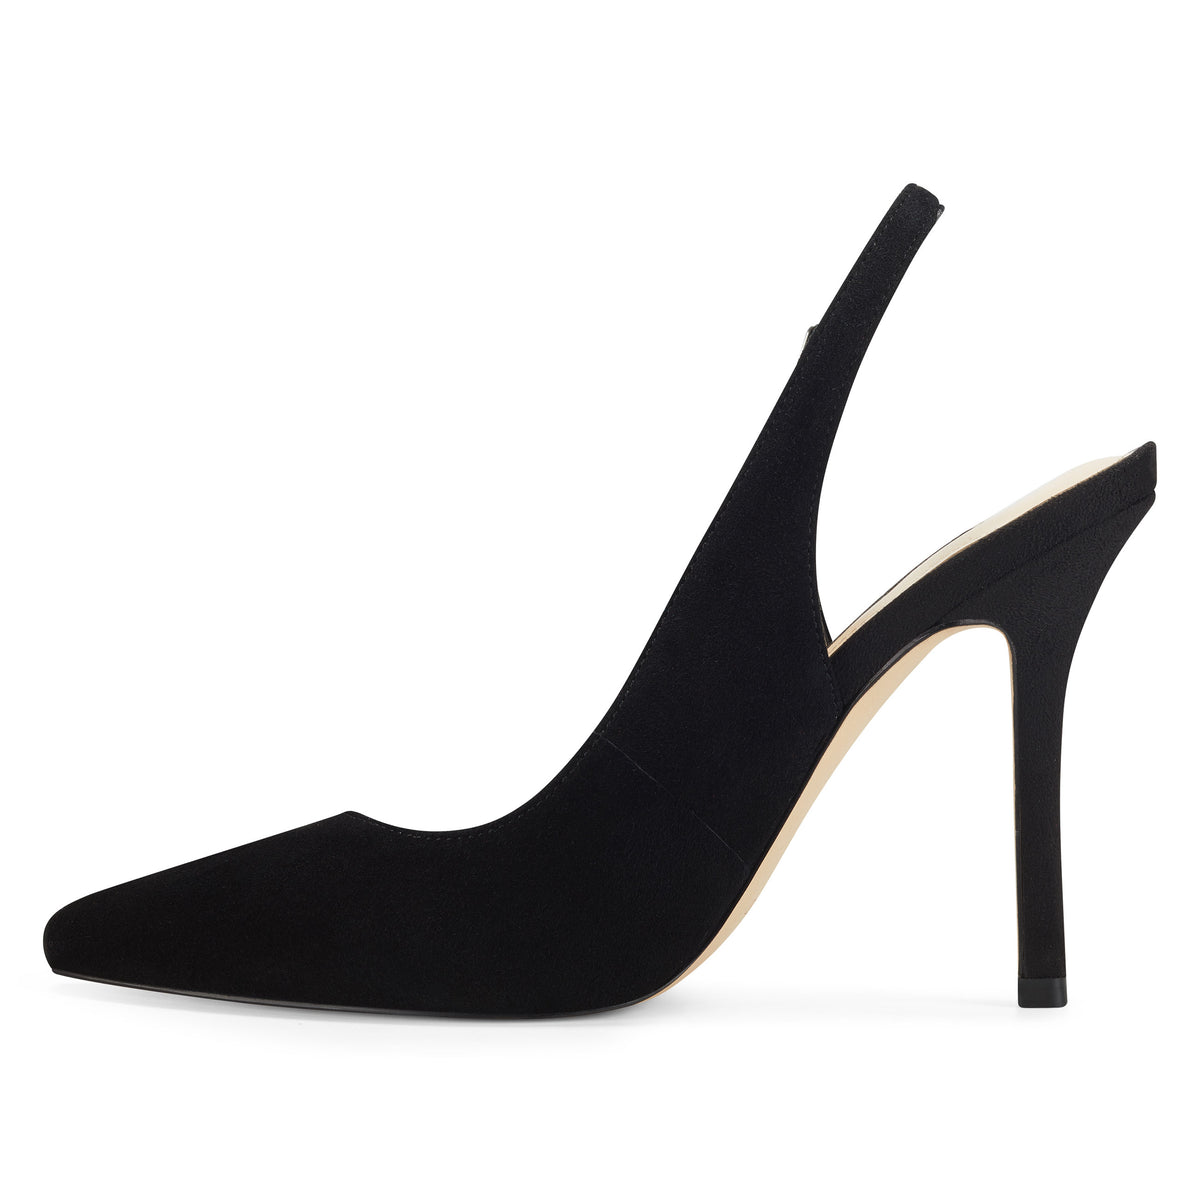 alison-slingback-pumps-in-black-suede